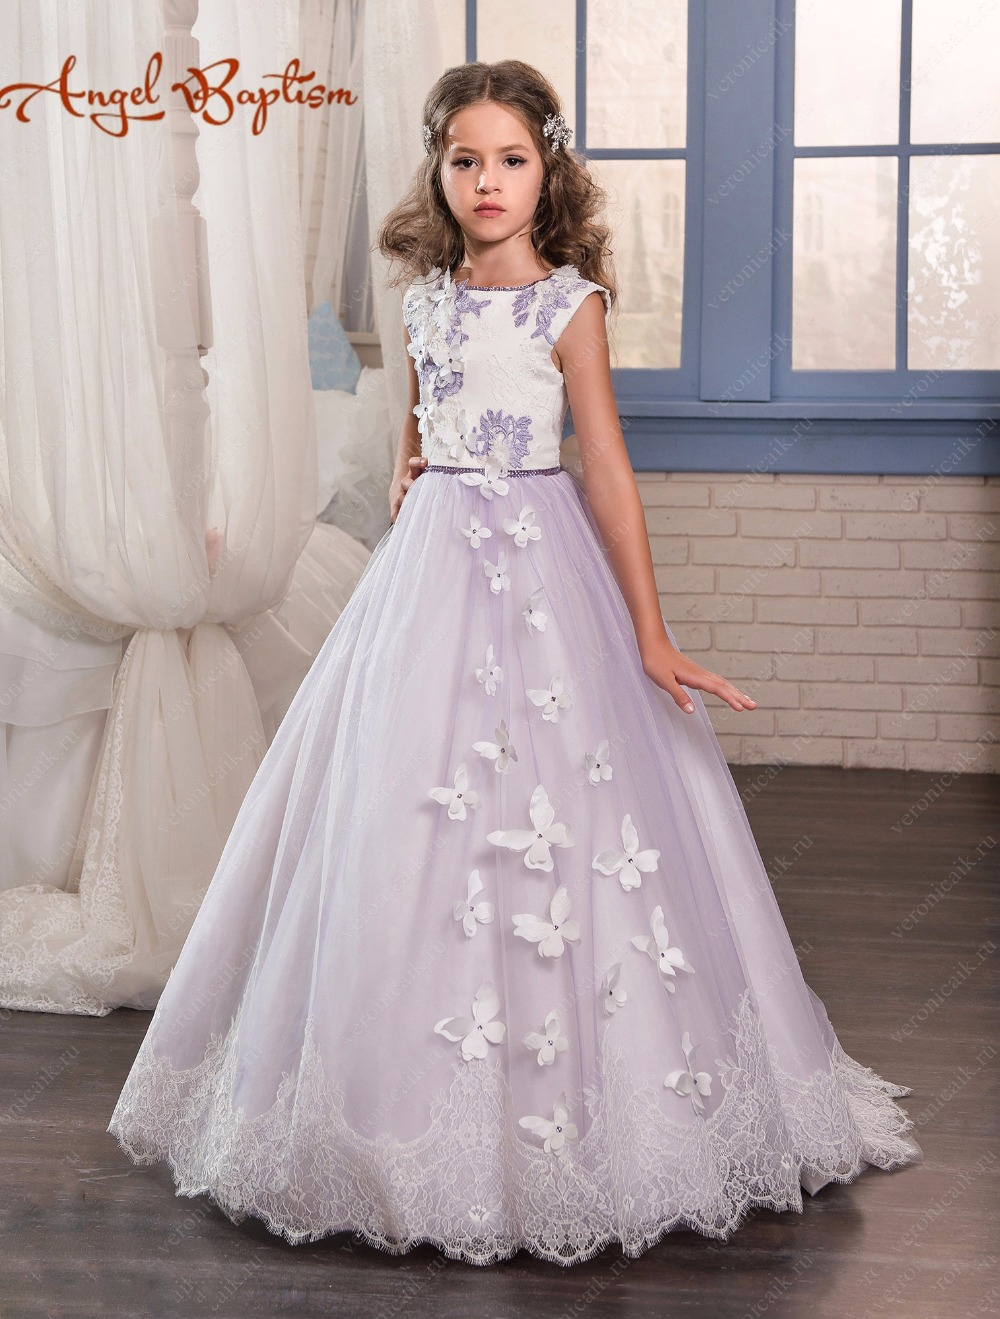 Lilac purple flower girl dress A-line sweep train open back princess first communion with crystals laces butterfly fairy dresses spaghetti strap chiffon open back dress